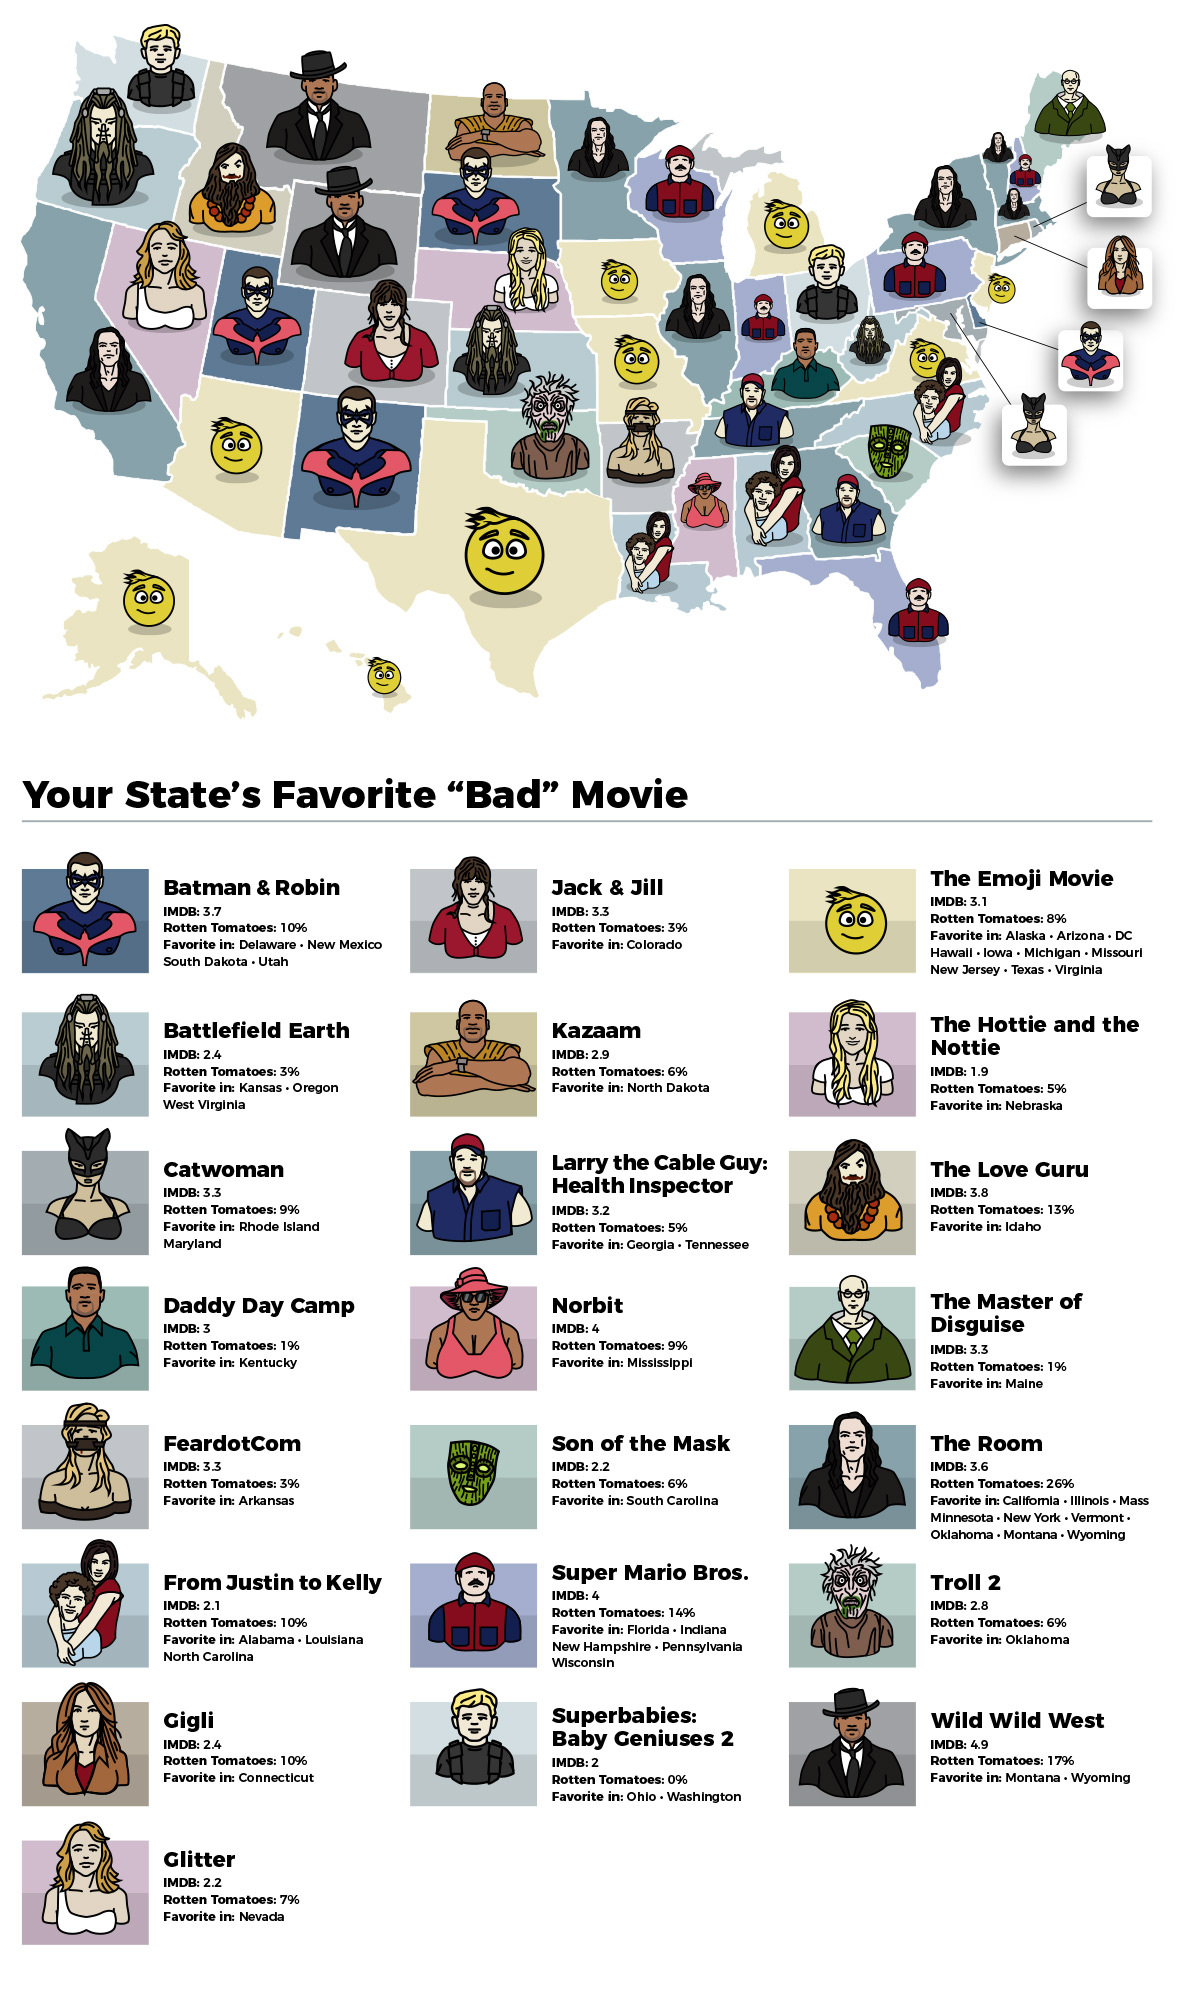 Each State's Favorite'Bad' Movie